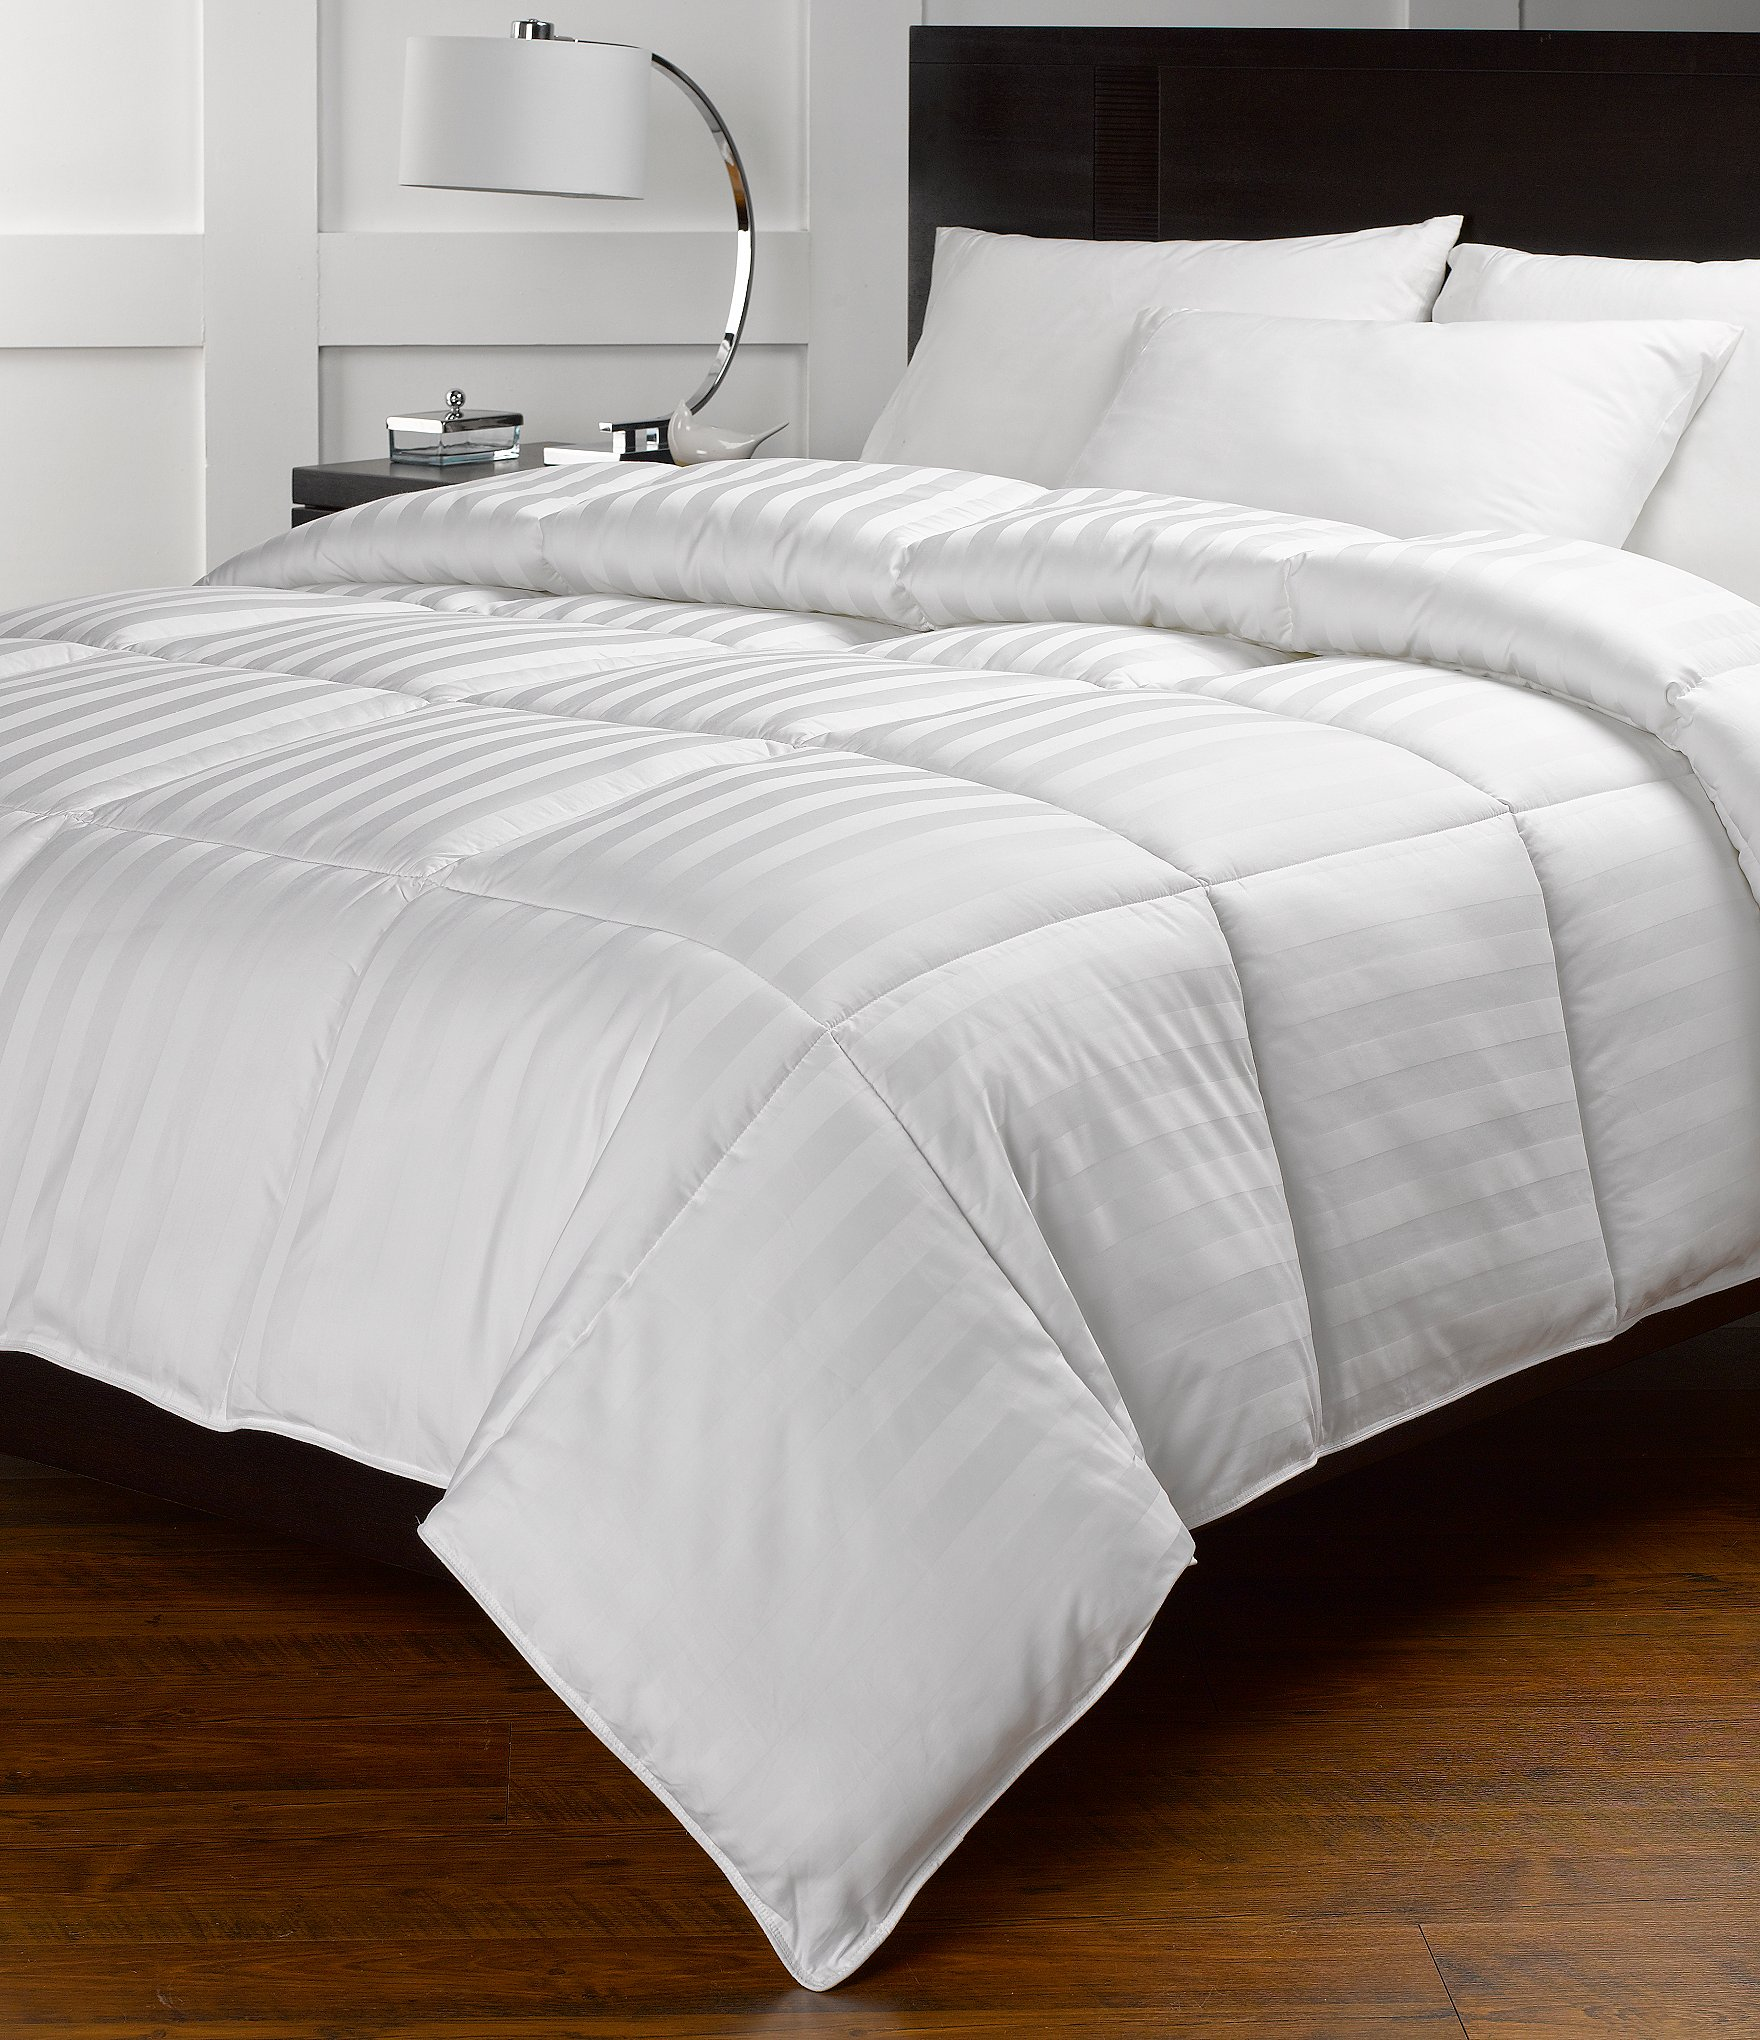 Noble Excellence Lightweight Warmth Down Comforter Duvet